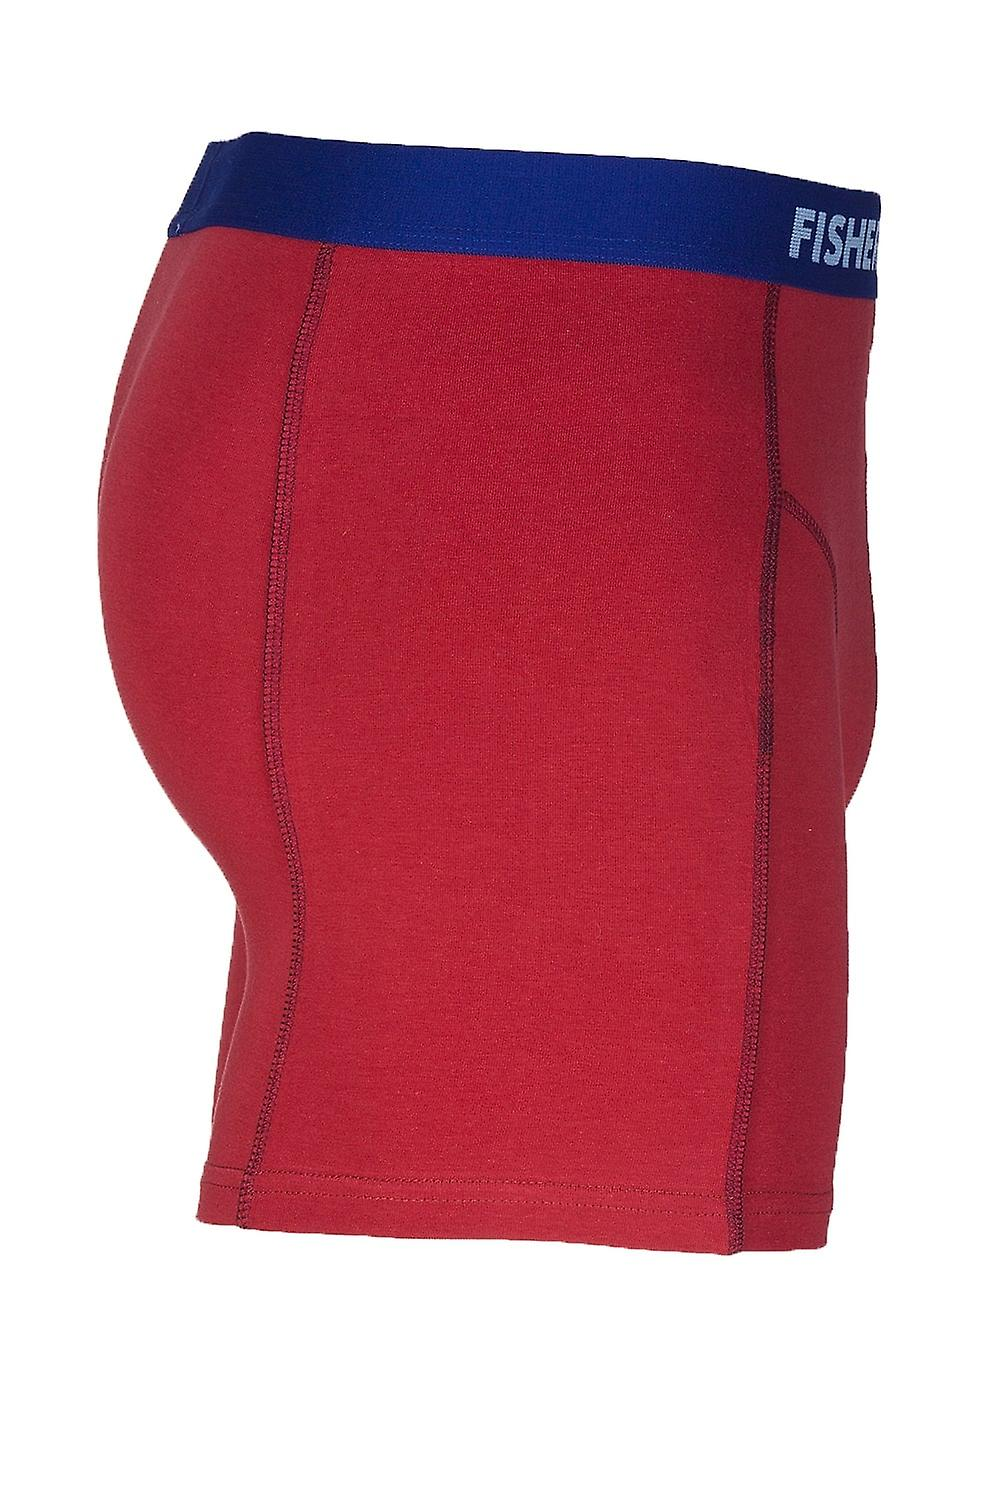 Fisher & Bennet Fisher And Bennet Mens Cotton Stretch Red Boxer Shorts